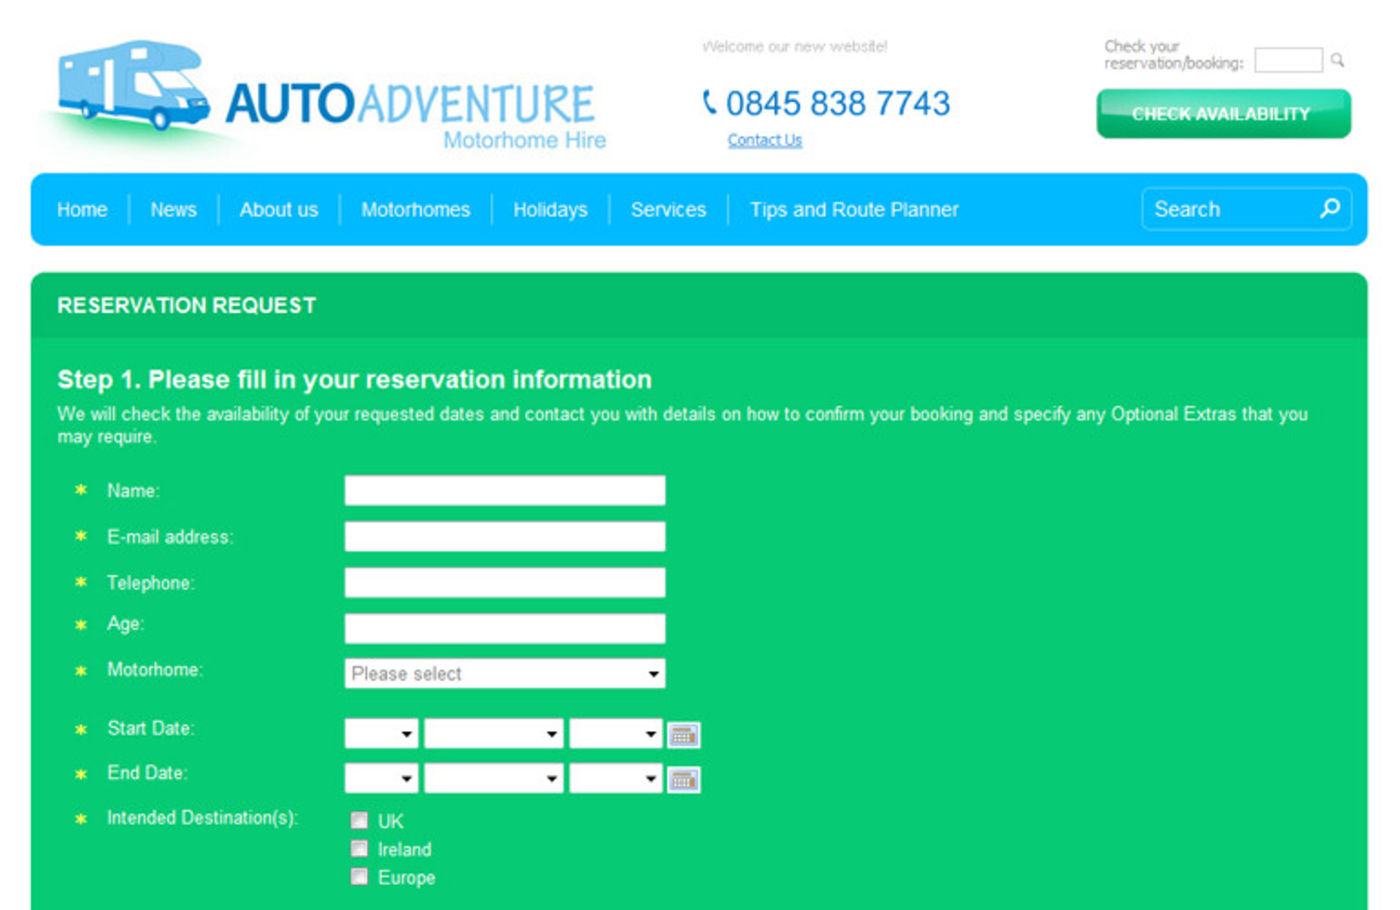 Auto Adventure Reservation Request